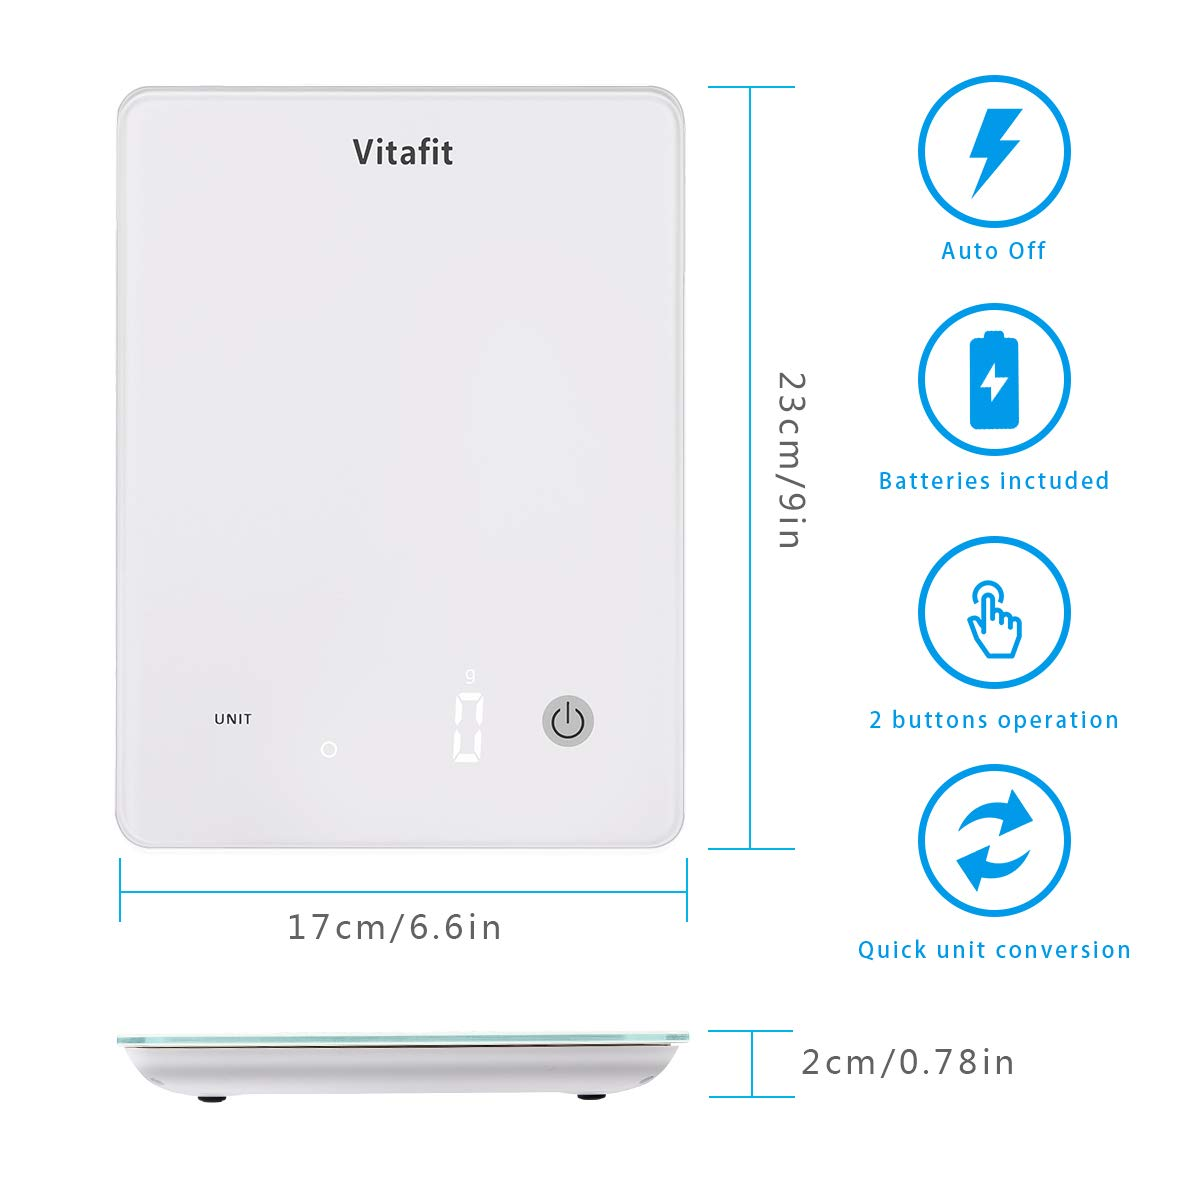 Vitafit 22lbs/10kg Digital Kitchen Scale, Multifunction Food Scale with LED Screen Display,Tempered glass platform,Batteries Included